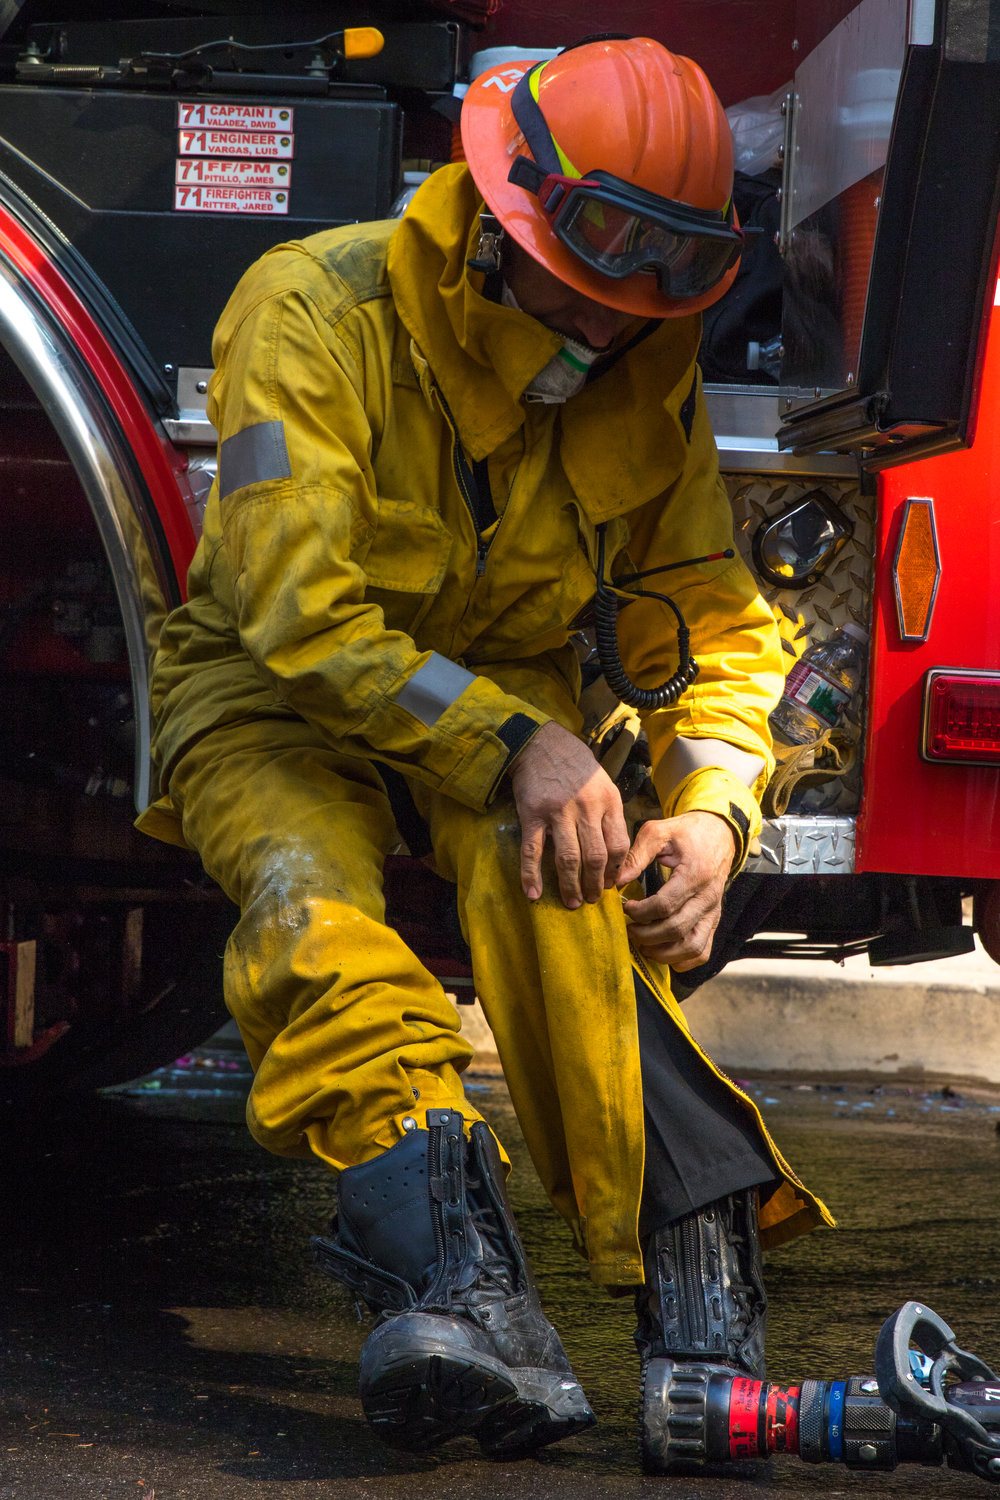 David Valdez puts on his fire suit before battling the Skirball fire. The Skirball Fire shut down the 405 and burned 450 acres of land on Dec. 6, 2017 in West Los Angeles, Calif. (Photo by Zane Meyer-Thornton)